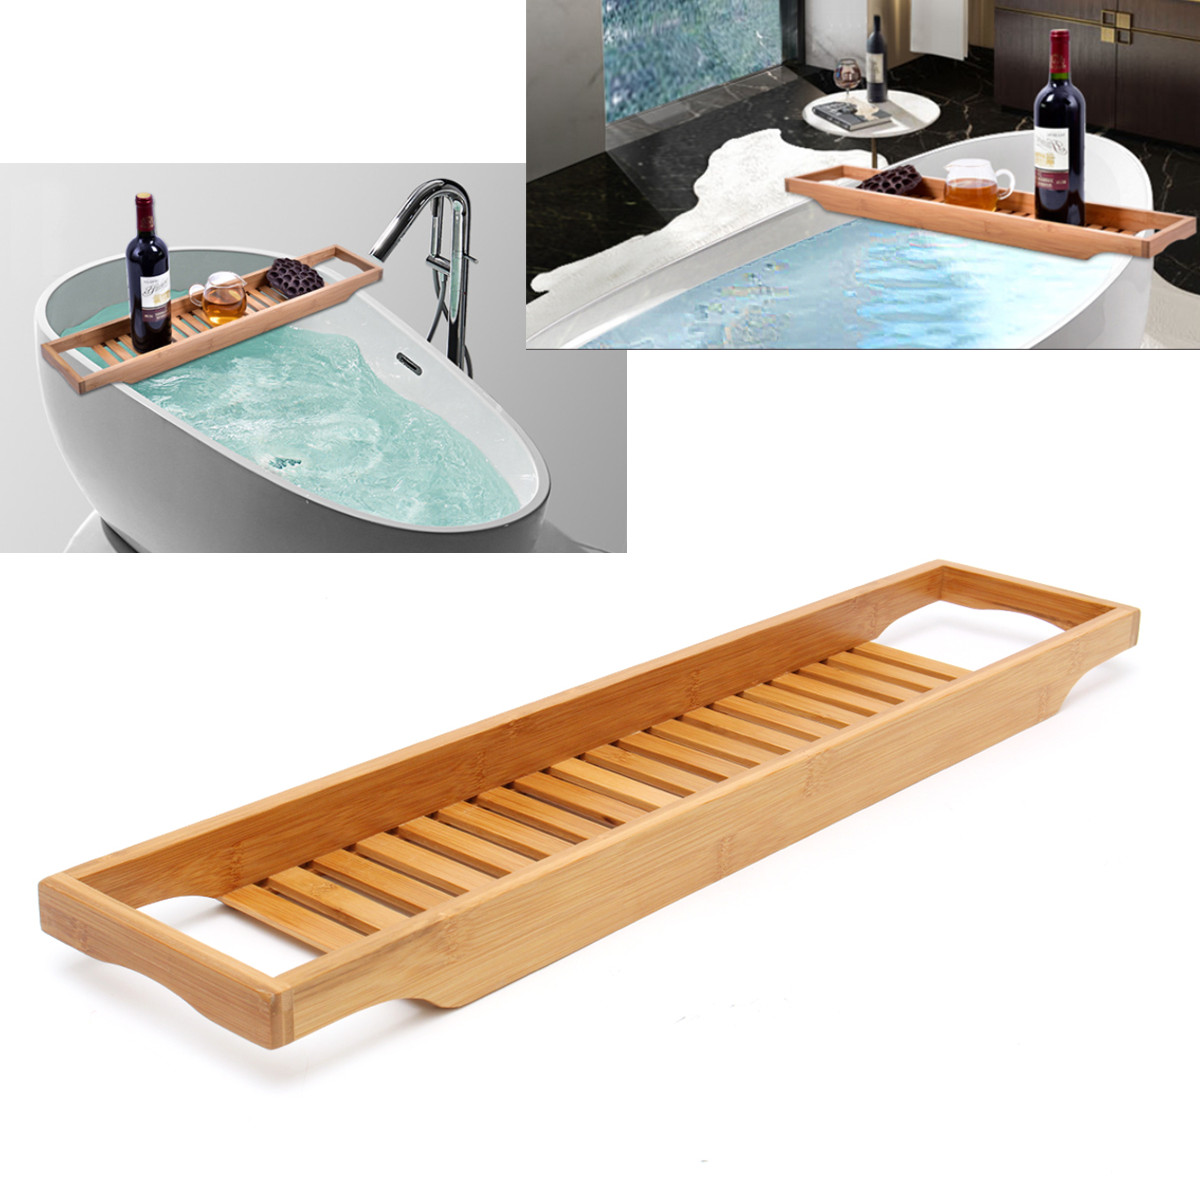 Luxury Bathroom Bamboo Bathtub Rack Support Bath Shelf Bath Tray ...